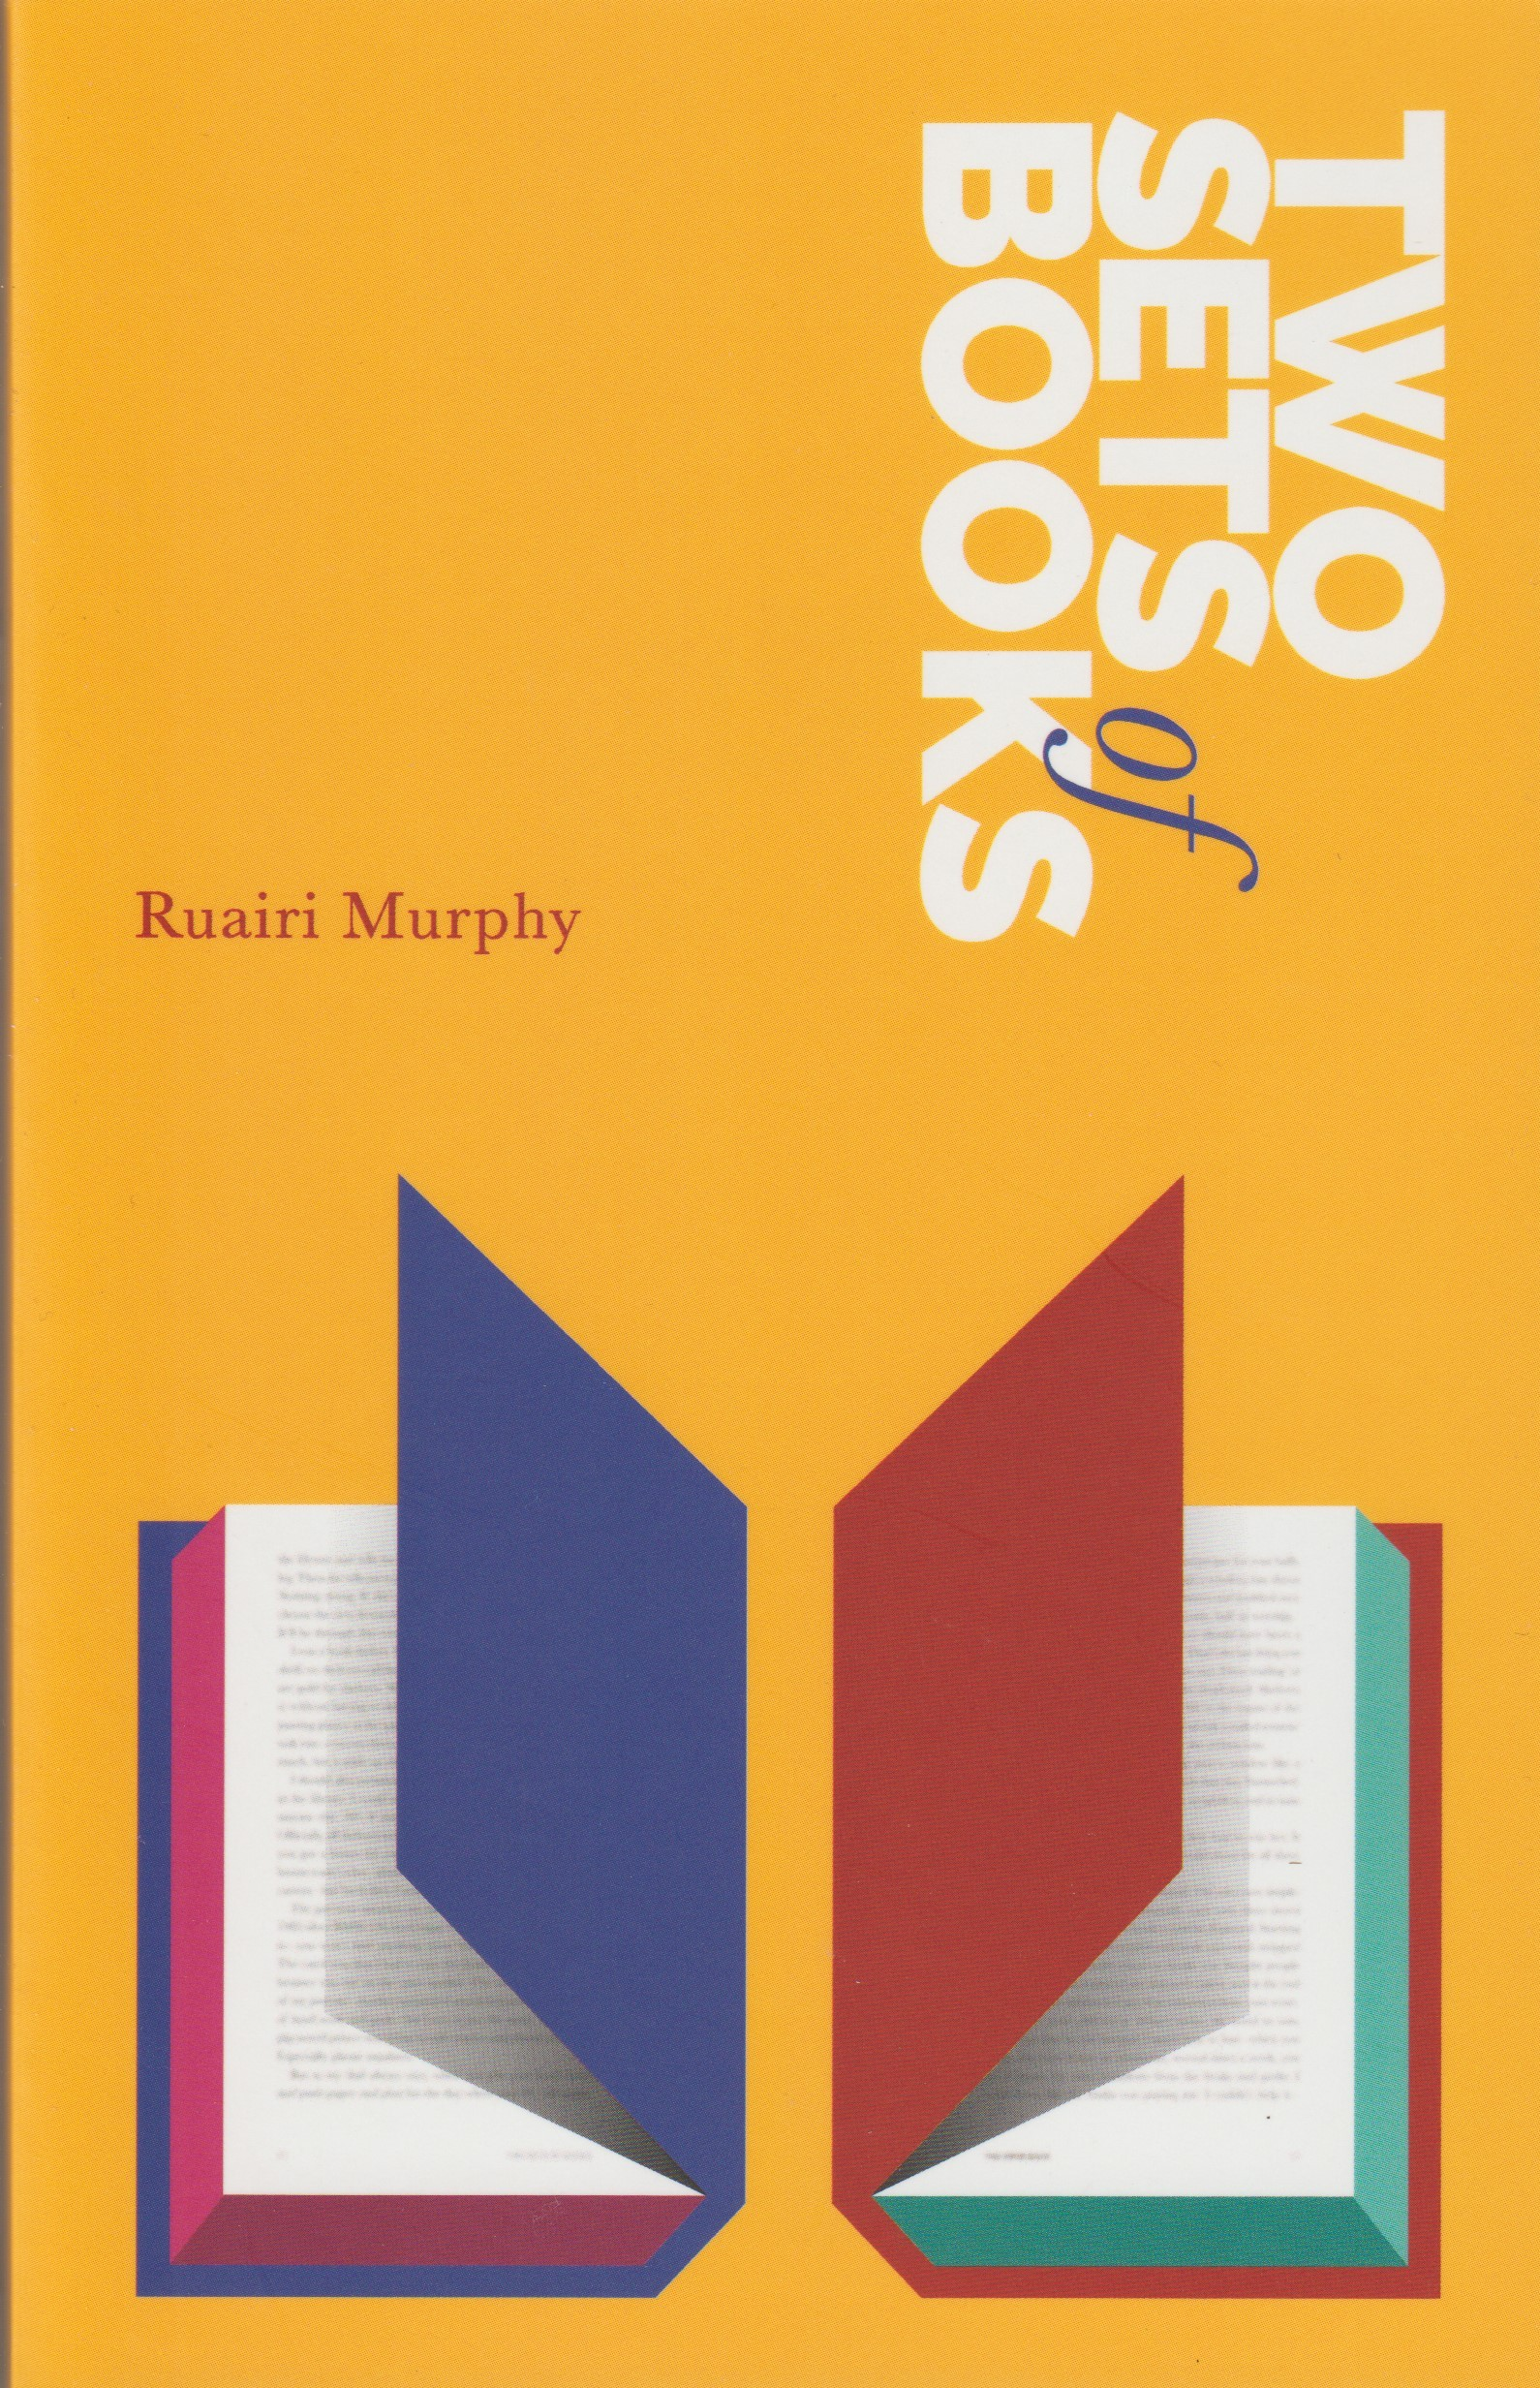 Two Sets of Books